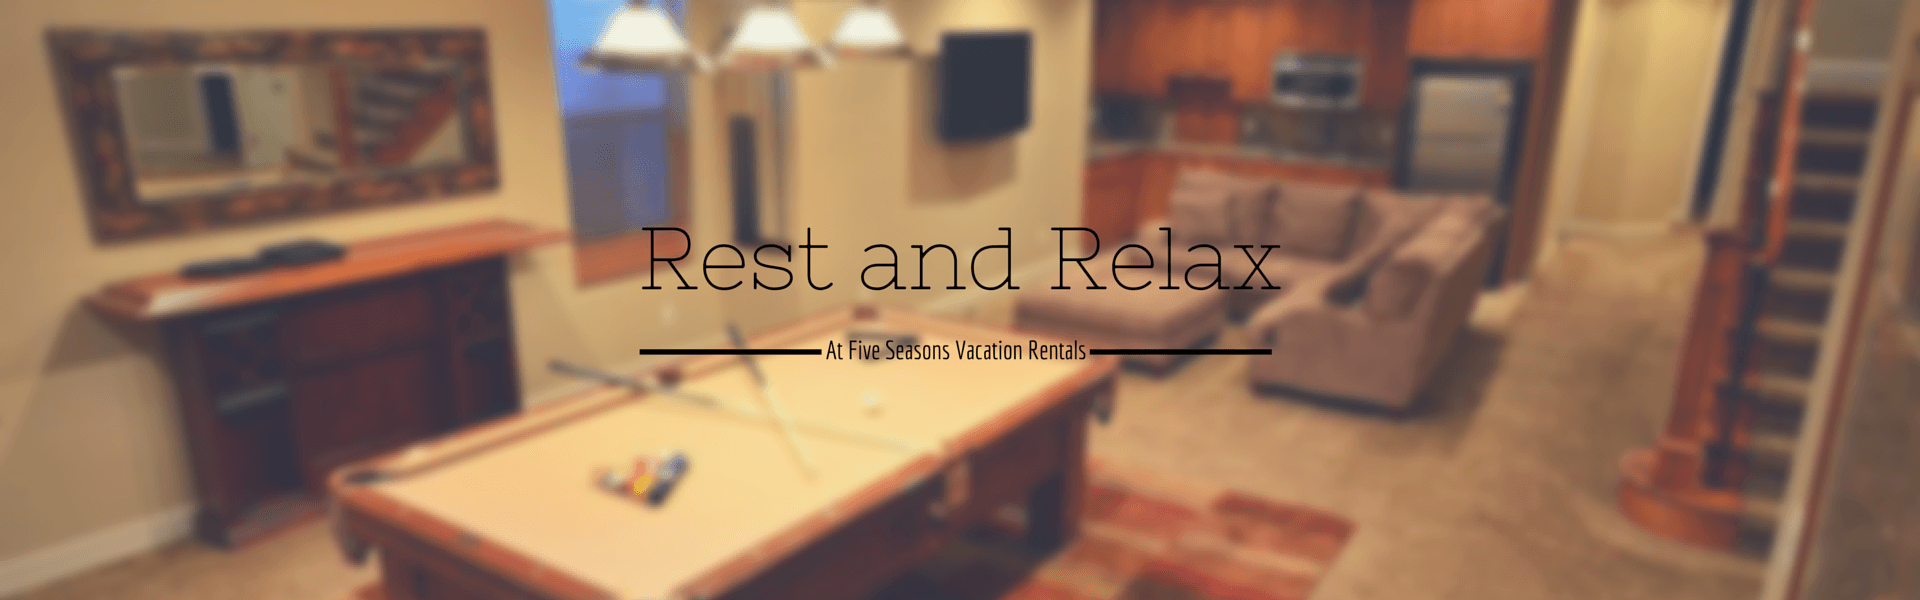 Rest and Relax at Five Seasons Vacation Rentals